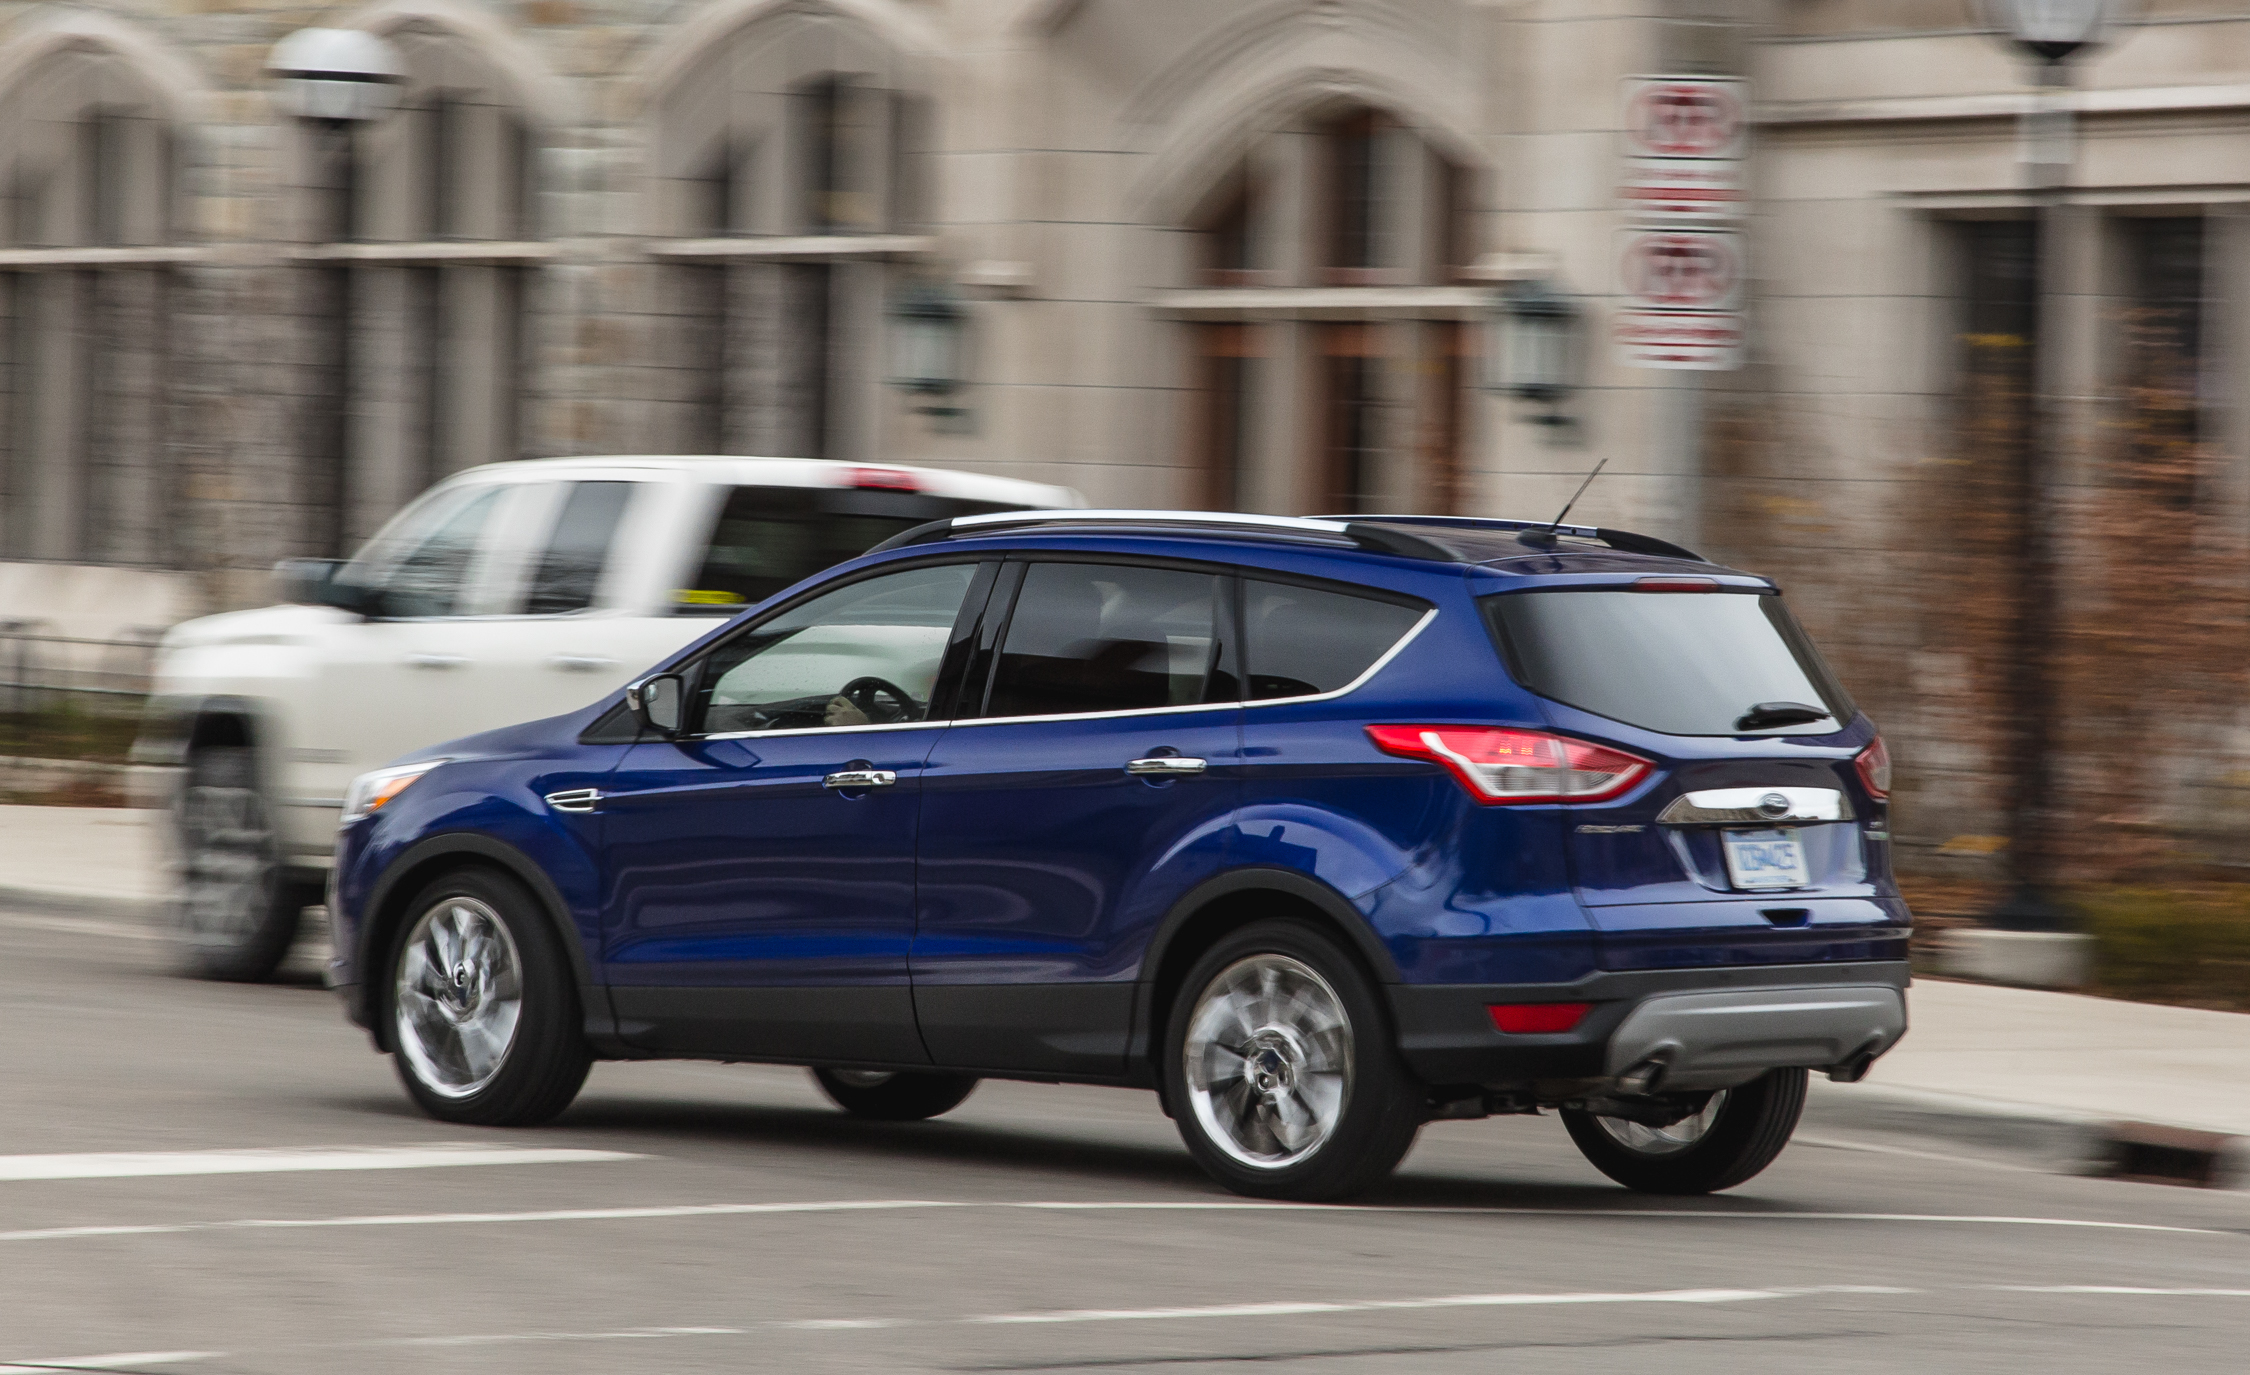 2016 ford escape ecoboost se test side and rear view 8217 cars performance reviews and test. Black Bedroom Furniture Sets. Home Design Ideas